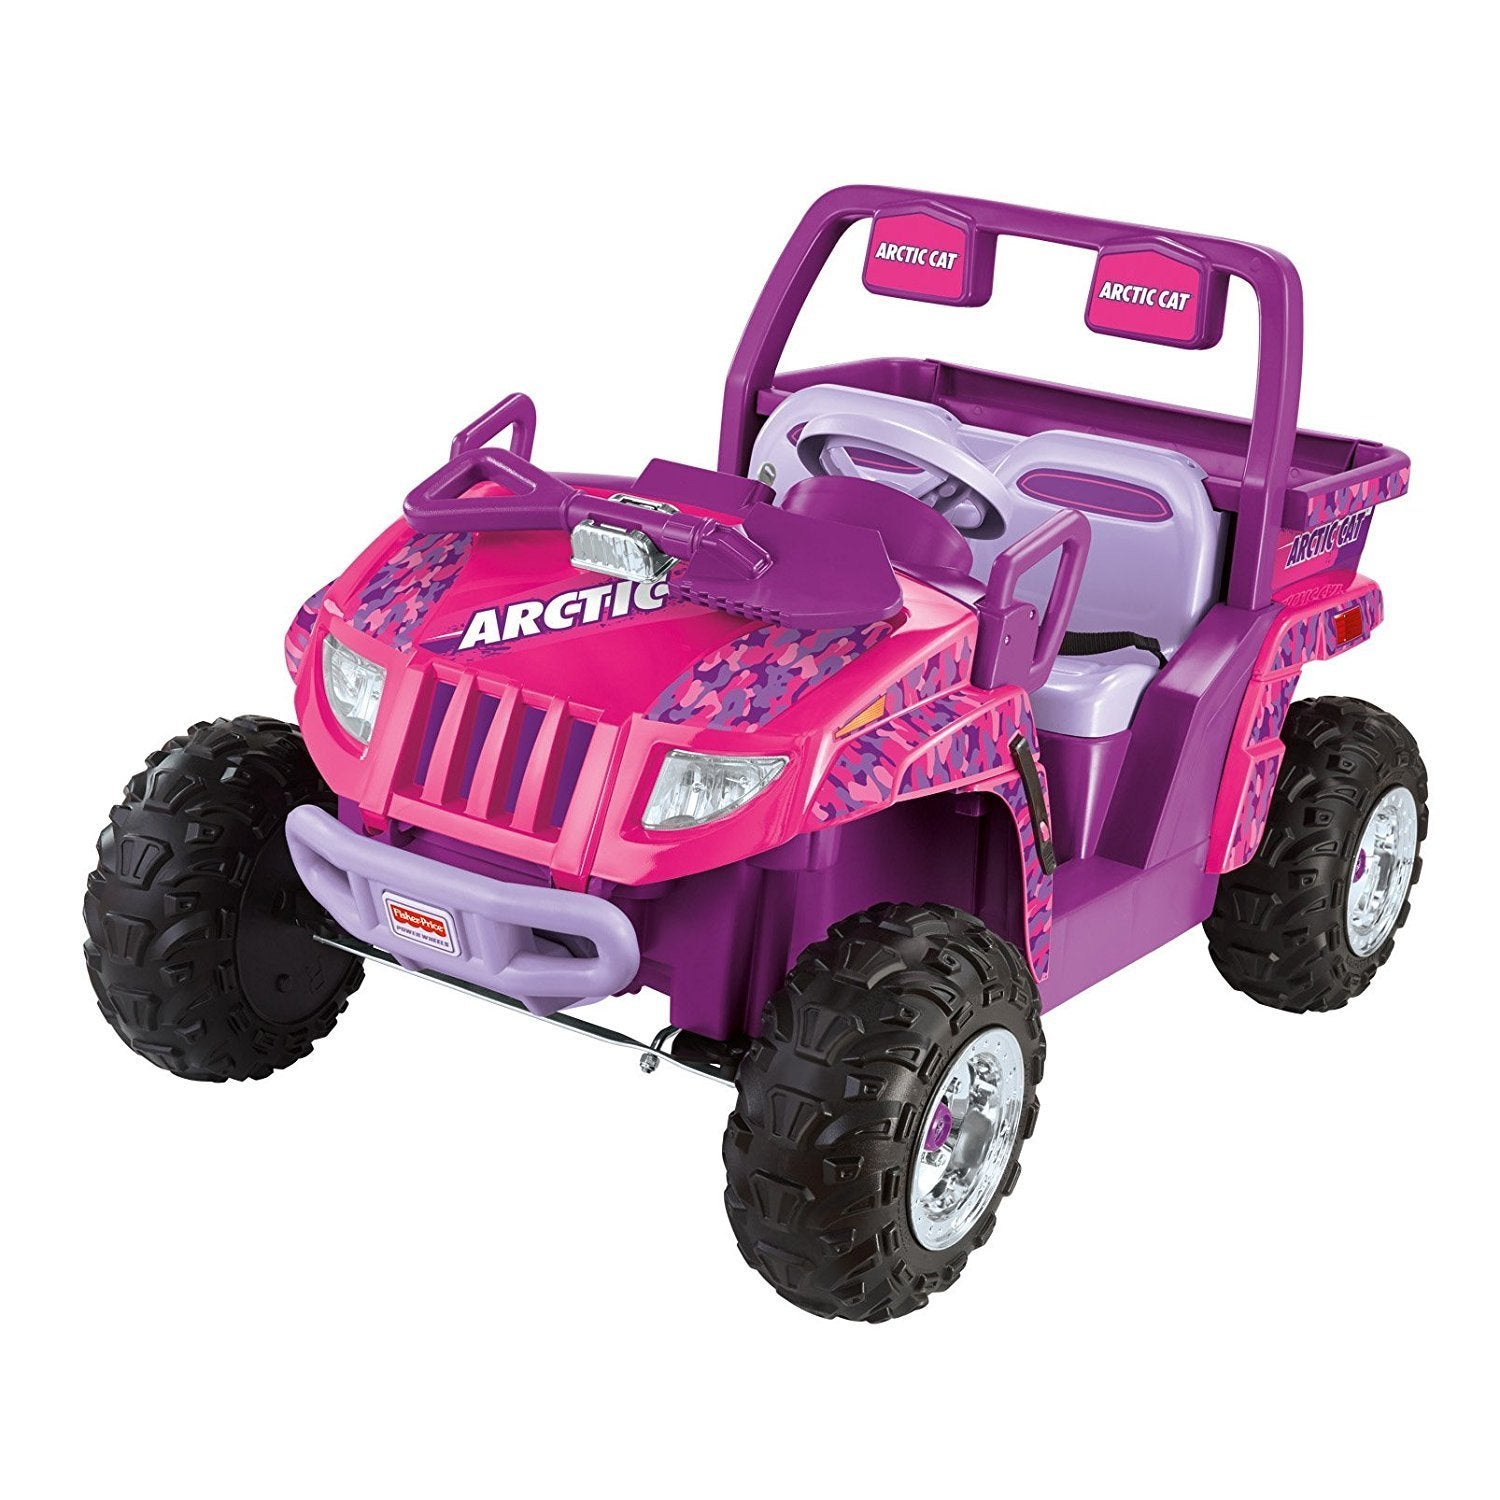 Fisher-Price Power Wheels Arctic Cat 1000, Pink